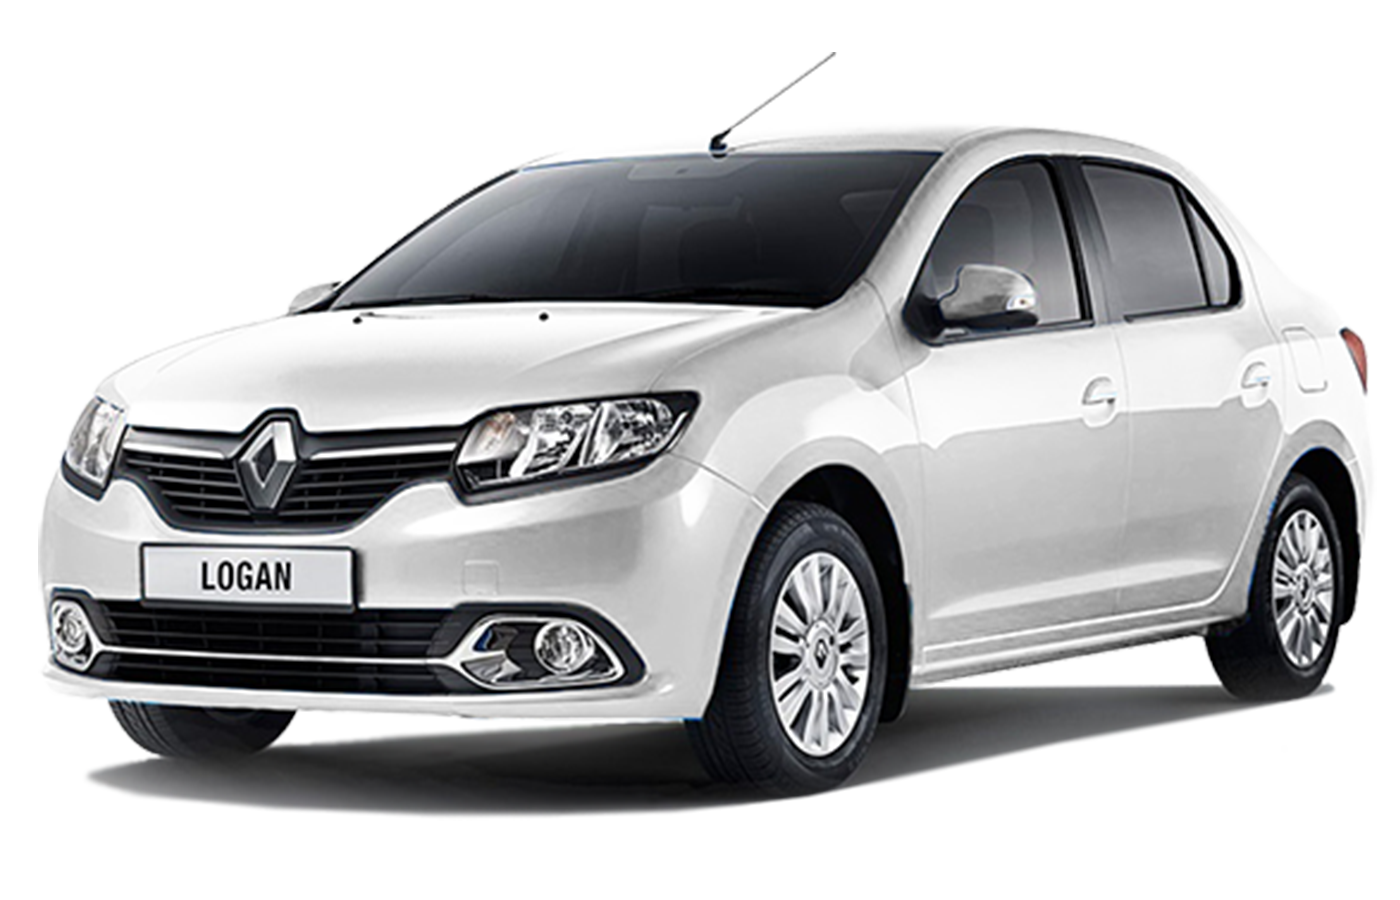 83 The Best Renault Logan 2019 Research New